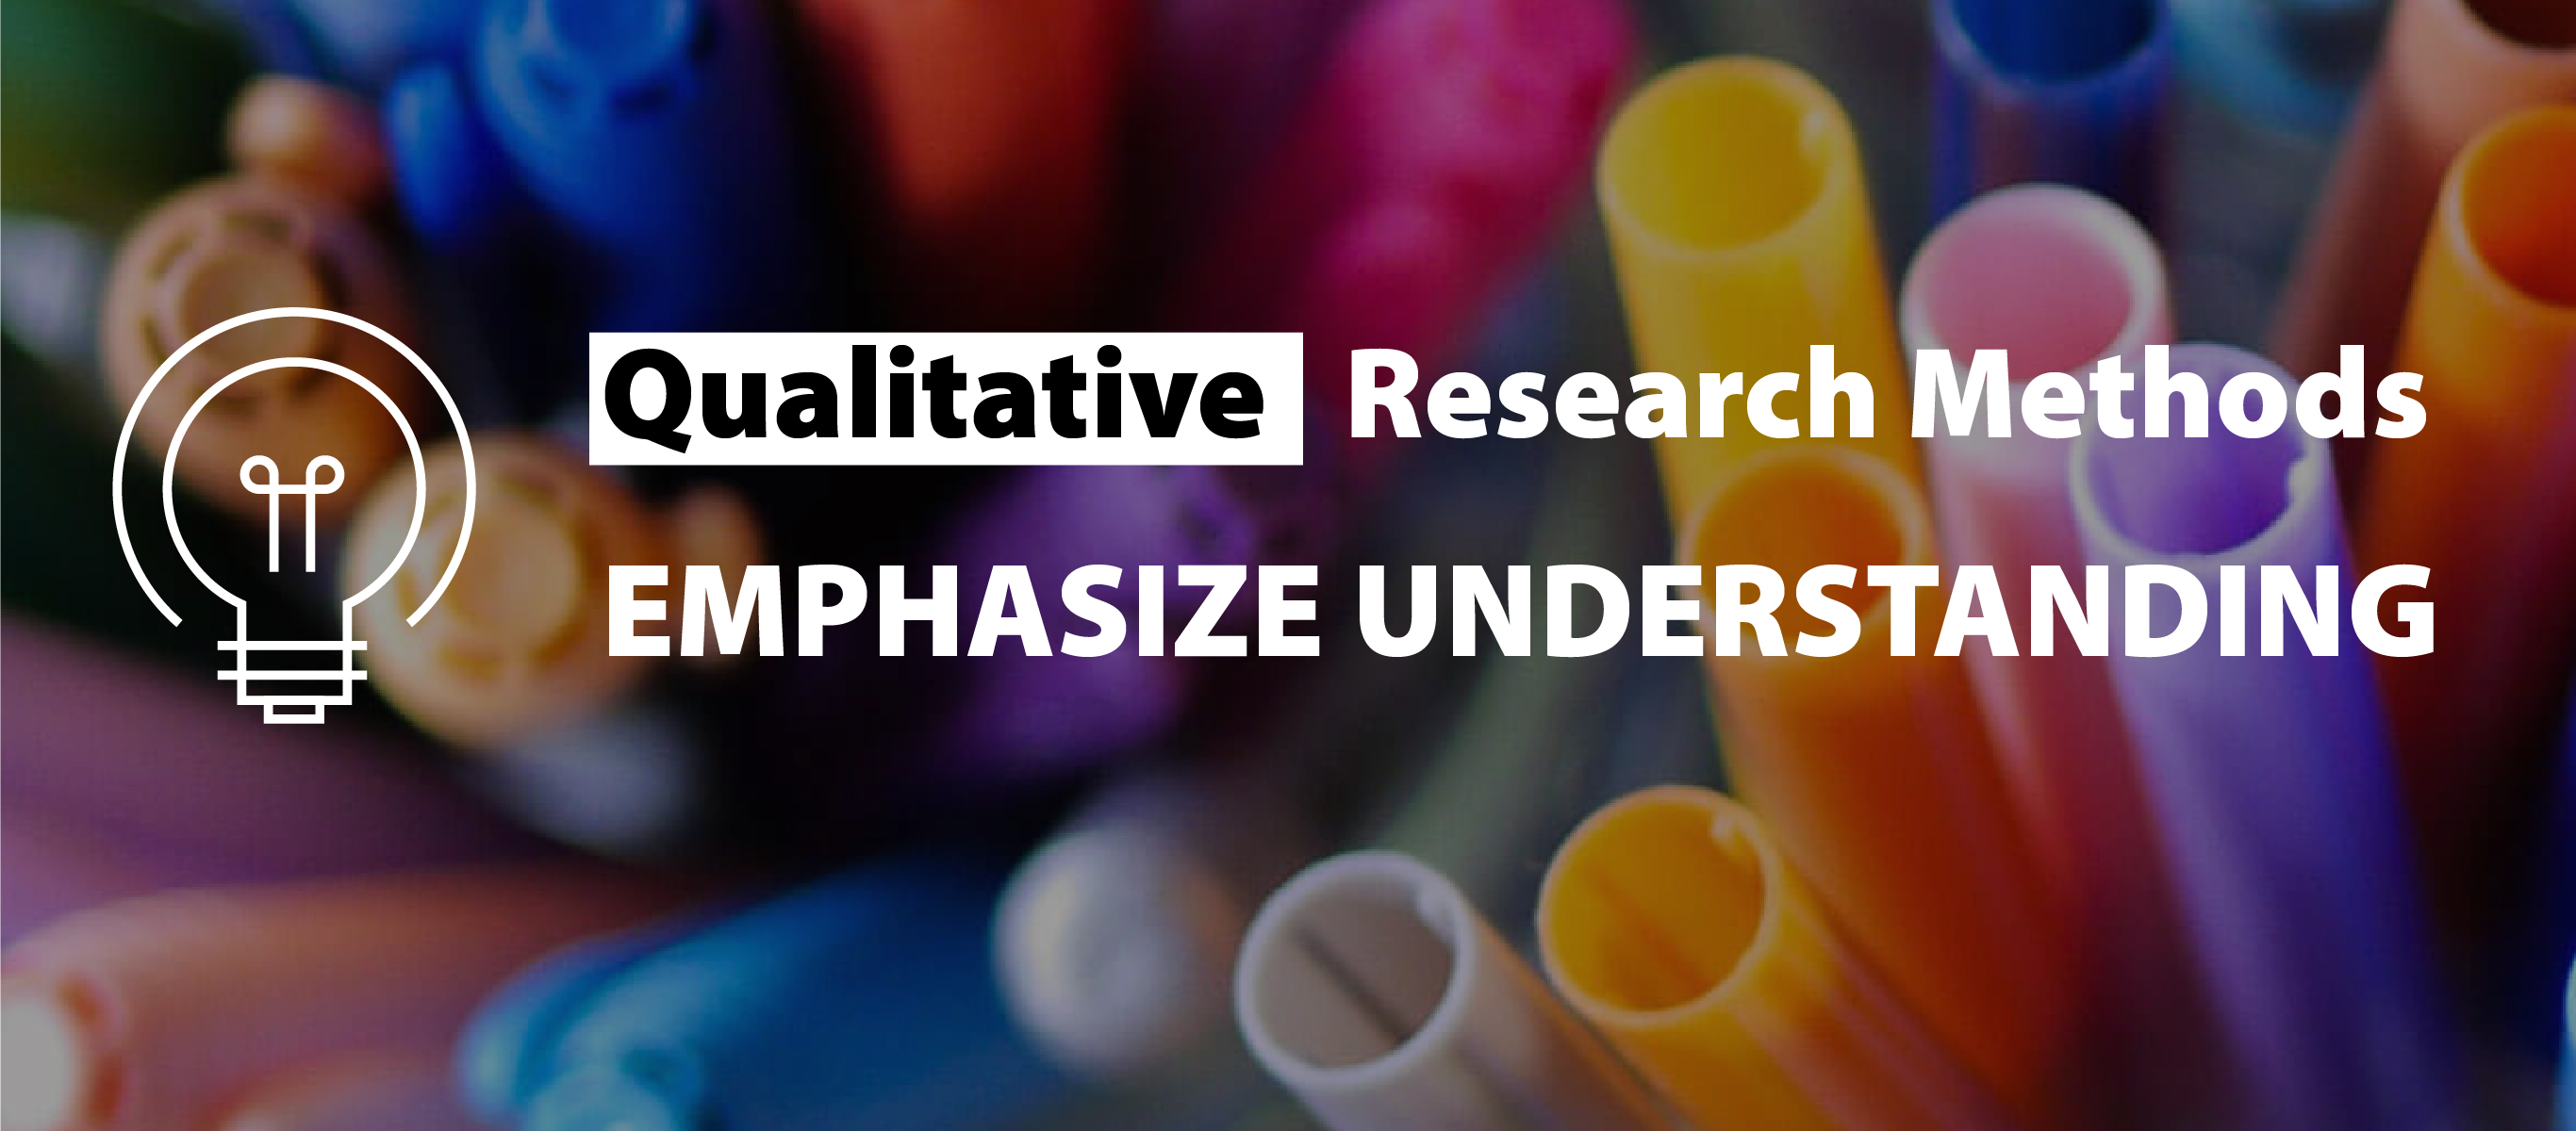 Qualitative Research Methods Emphasize Understanding